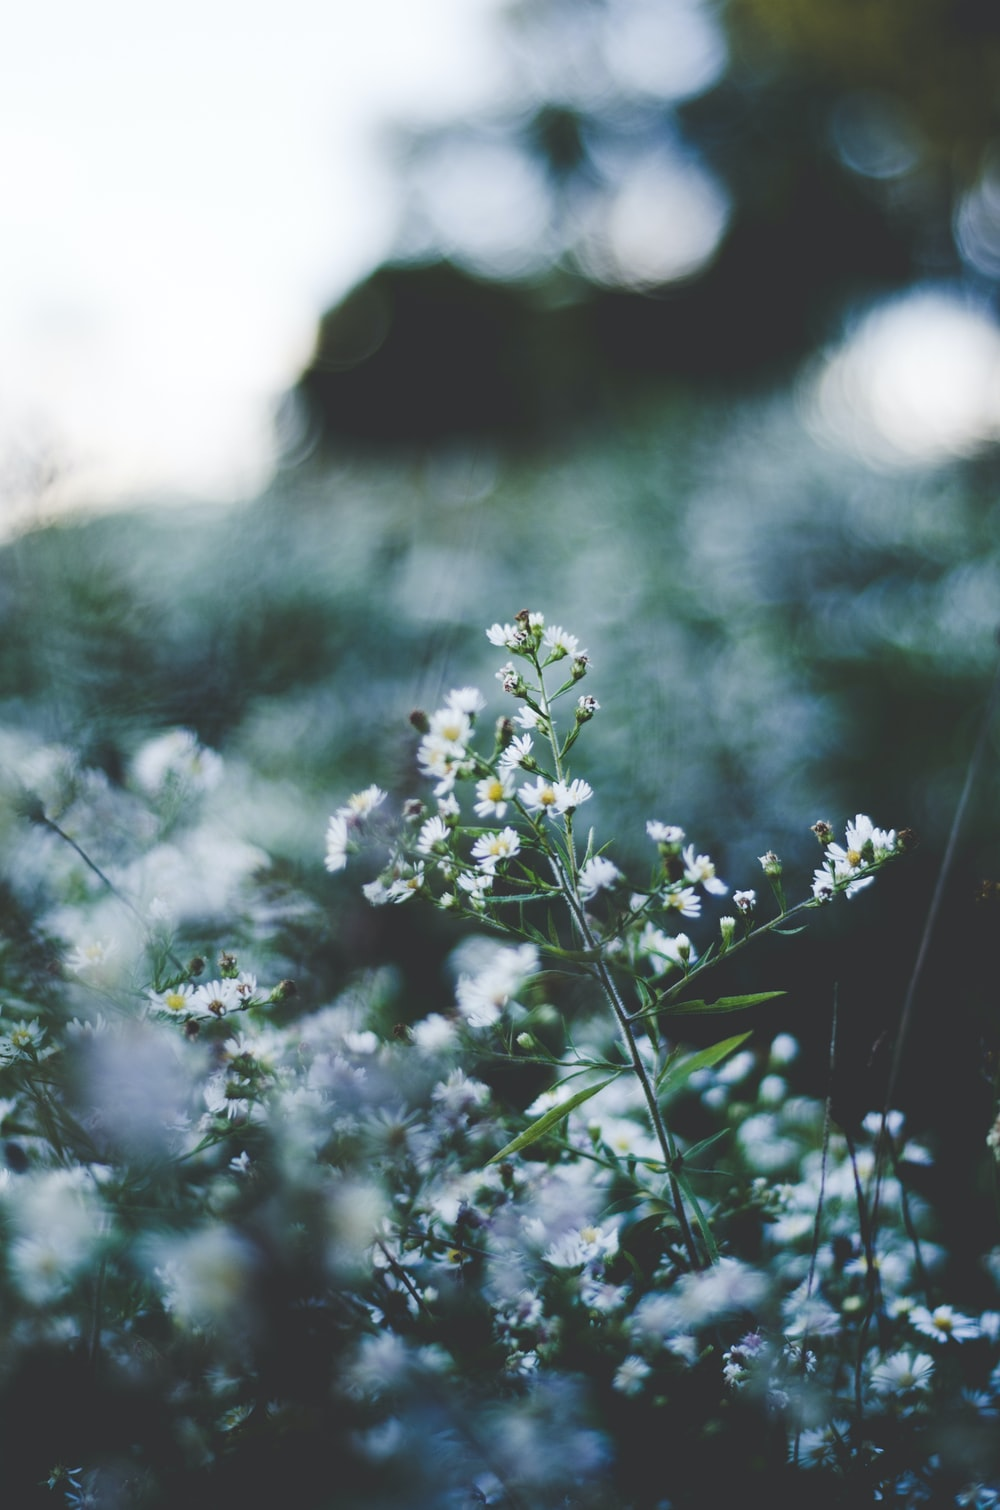 Iphone Wallpapers 19 Best Free Iphone Wallpaper Plant Wallpaper And Grey Photos On Unsplash